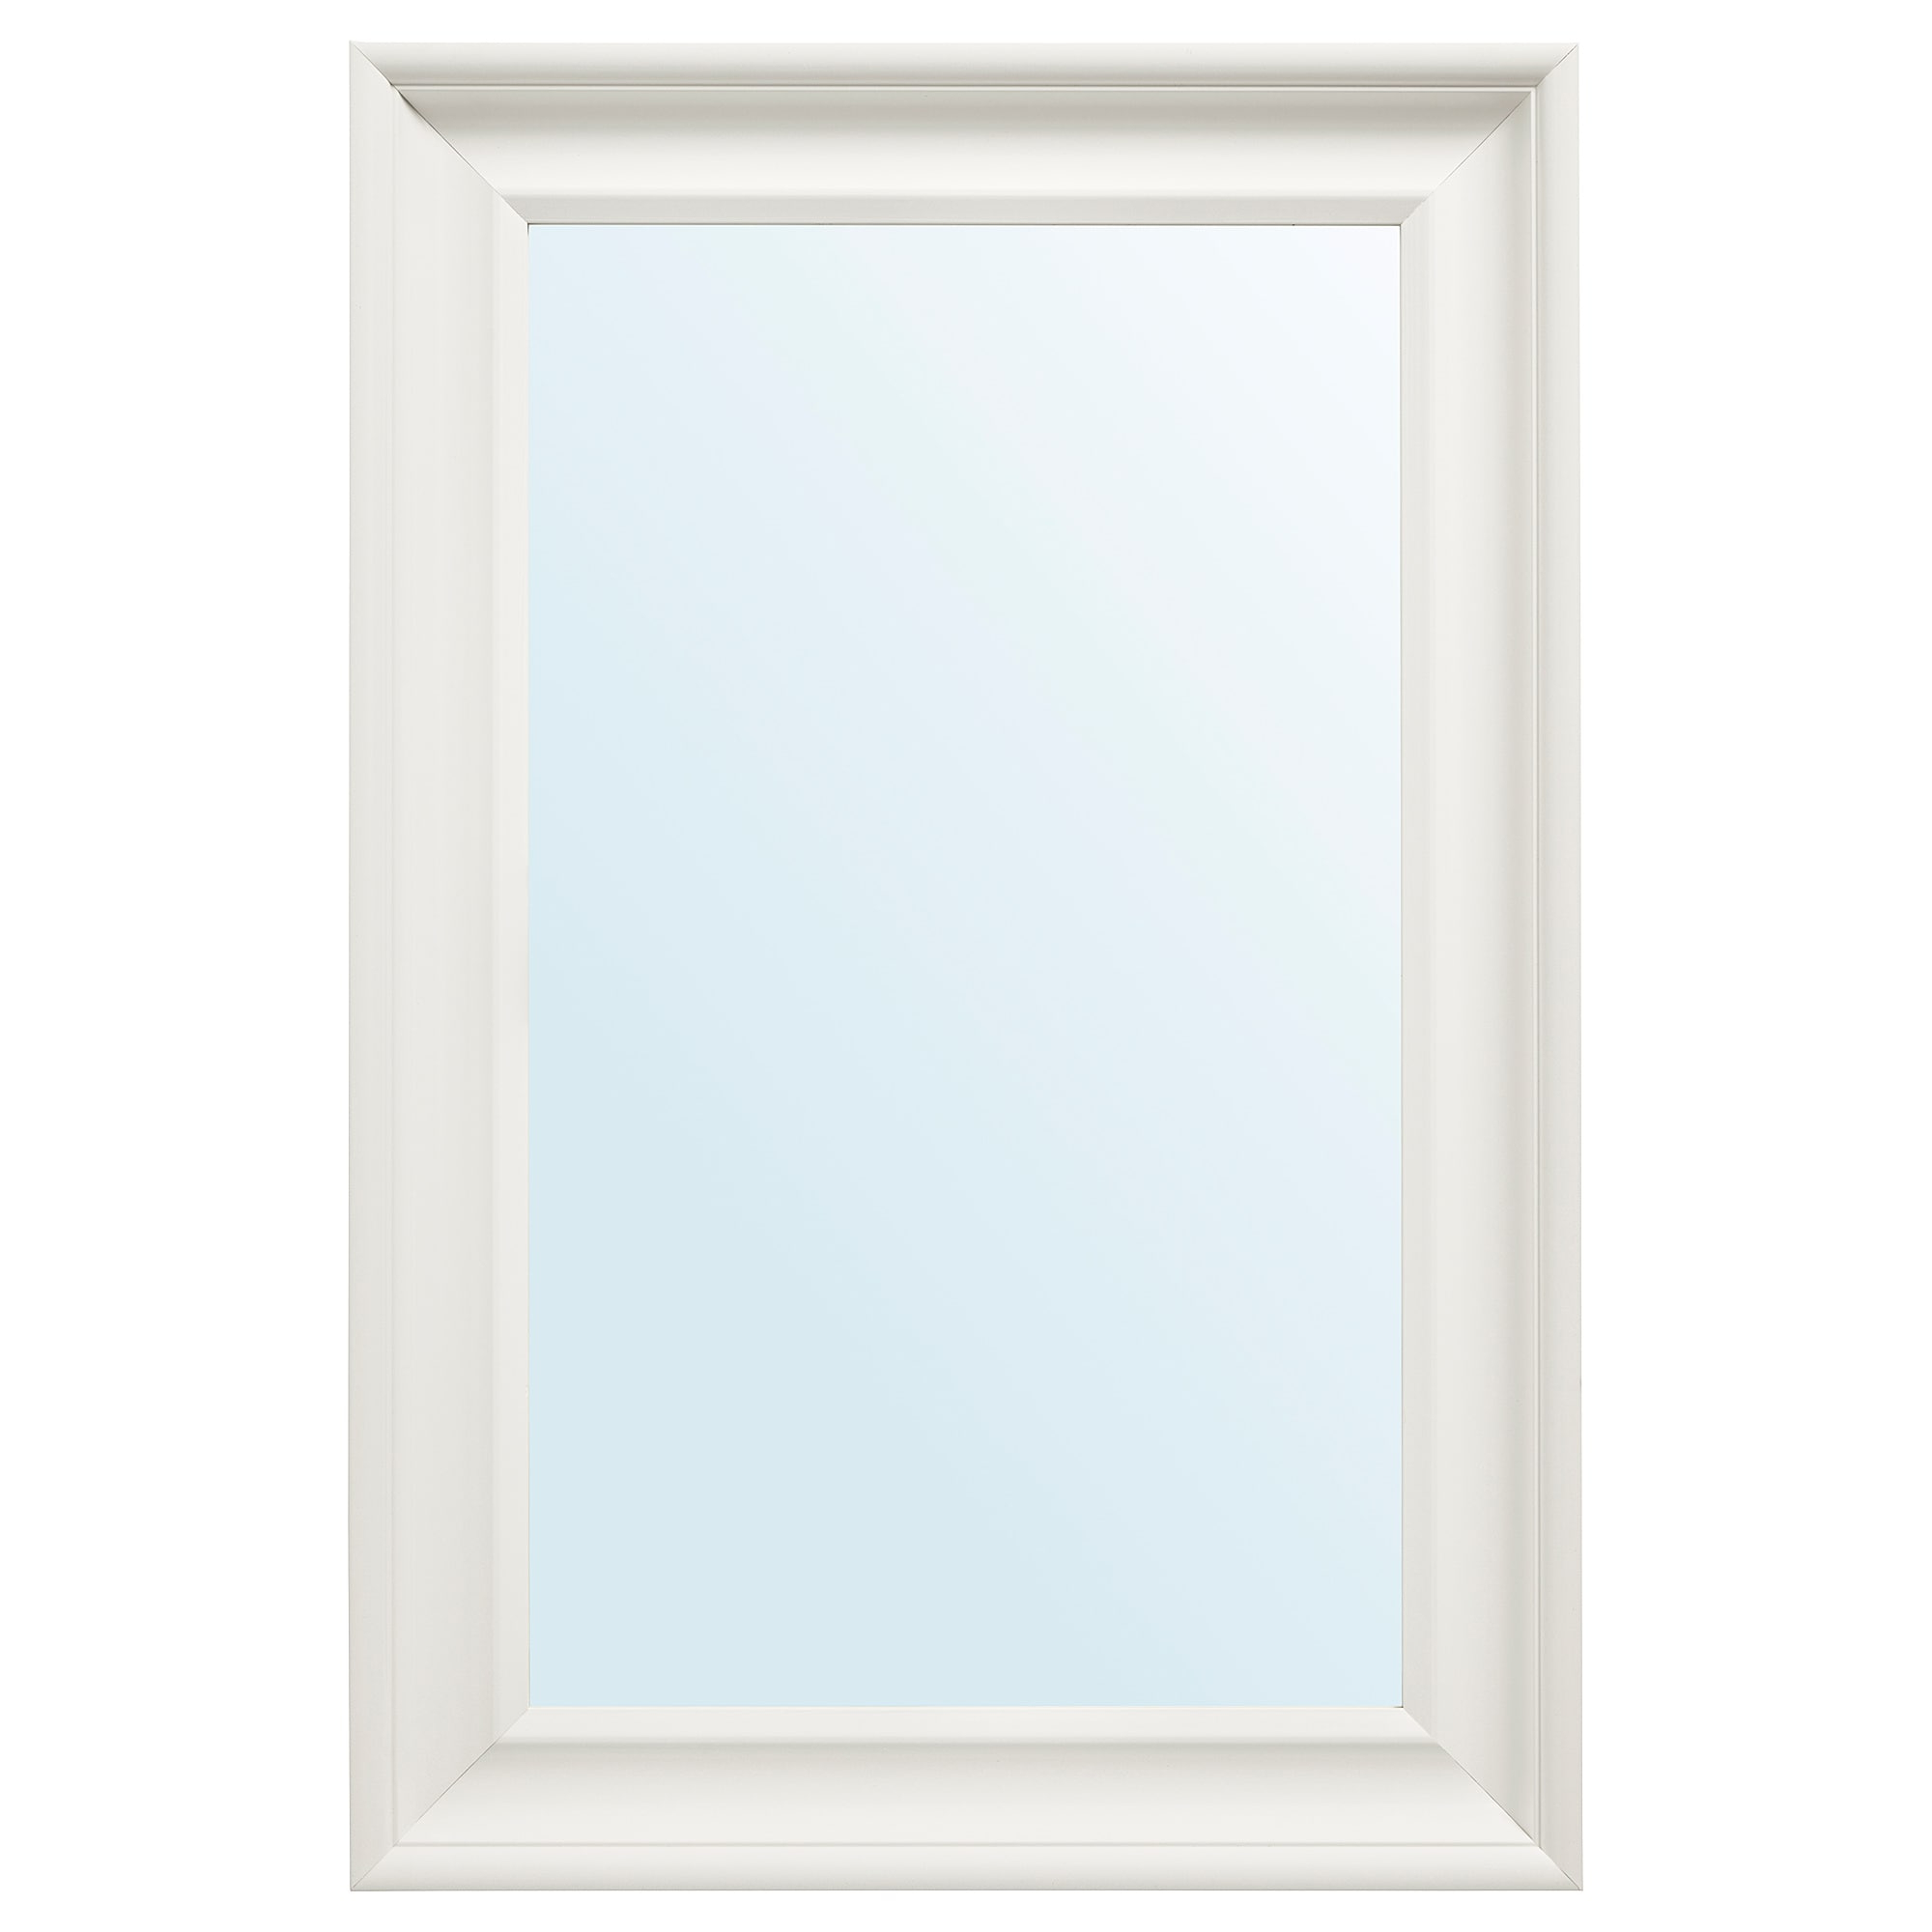 Most Popular Hemnes – Mirror, White Intended For Huge Wall Mirrors Ikea (View 10 of 20)